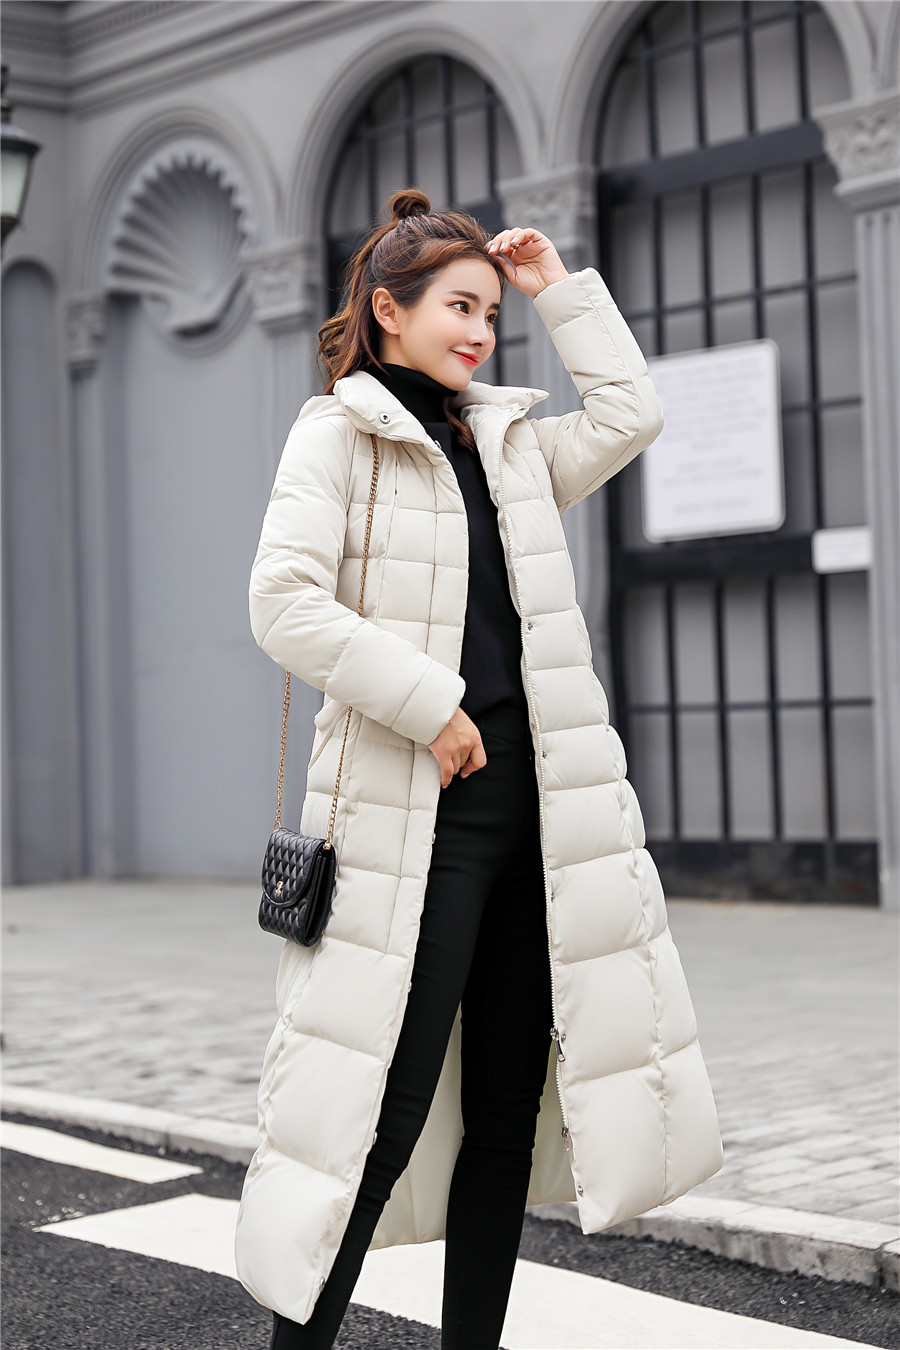 Down     Coat   women Long Fur Collar Jacket Women Winter with Hooded   Down     Coat   Winter Oversize Doudoune Jacket   Coat   Lady   Down   Parka